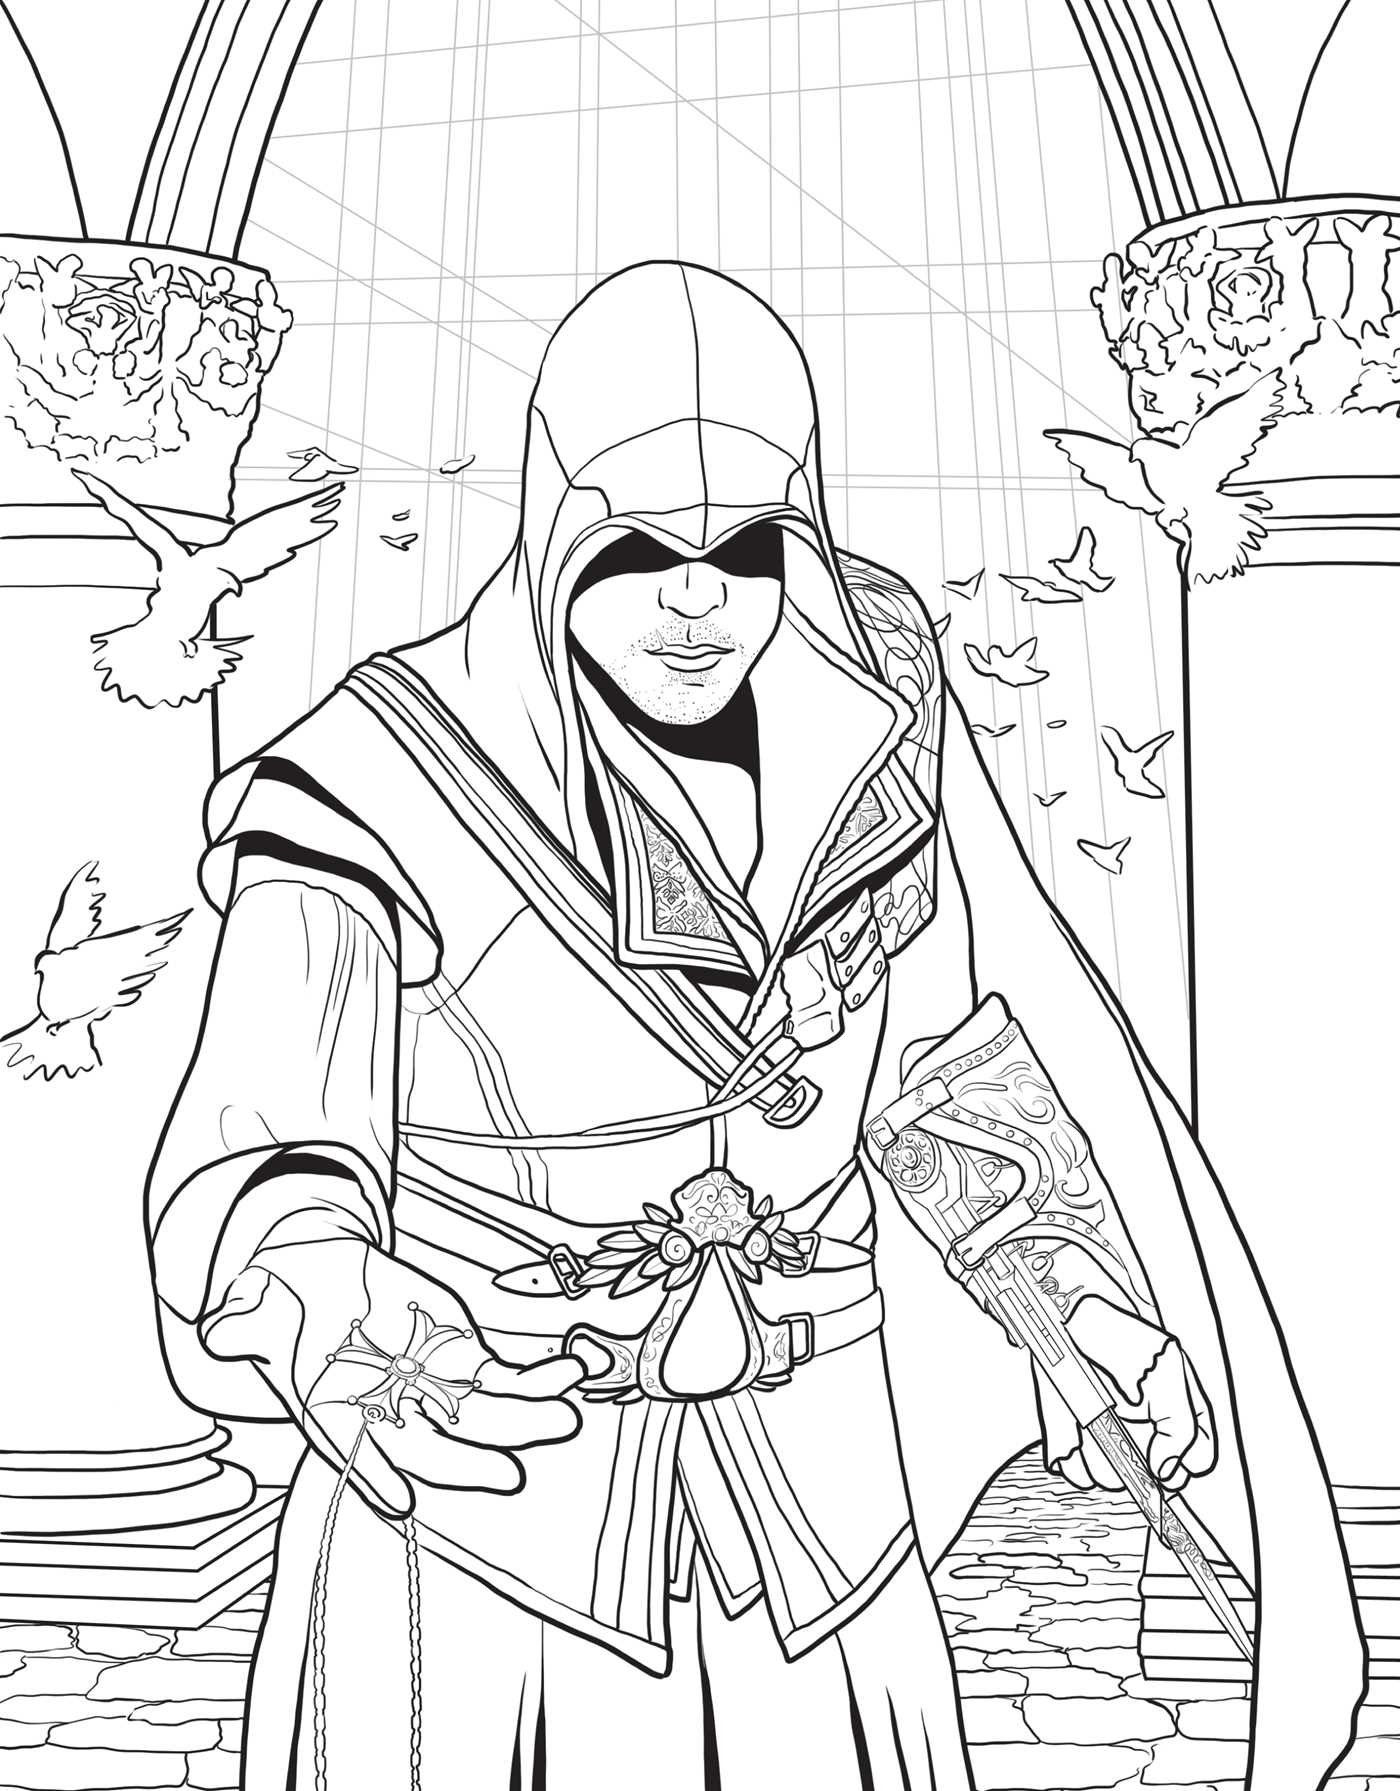 assassins creed the official coloring book insight editions 9781608878635 amazoncom books